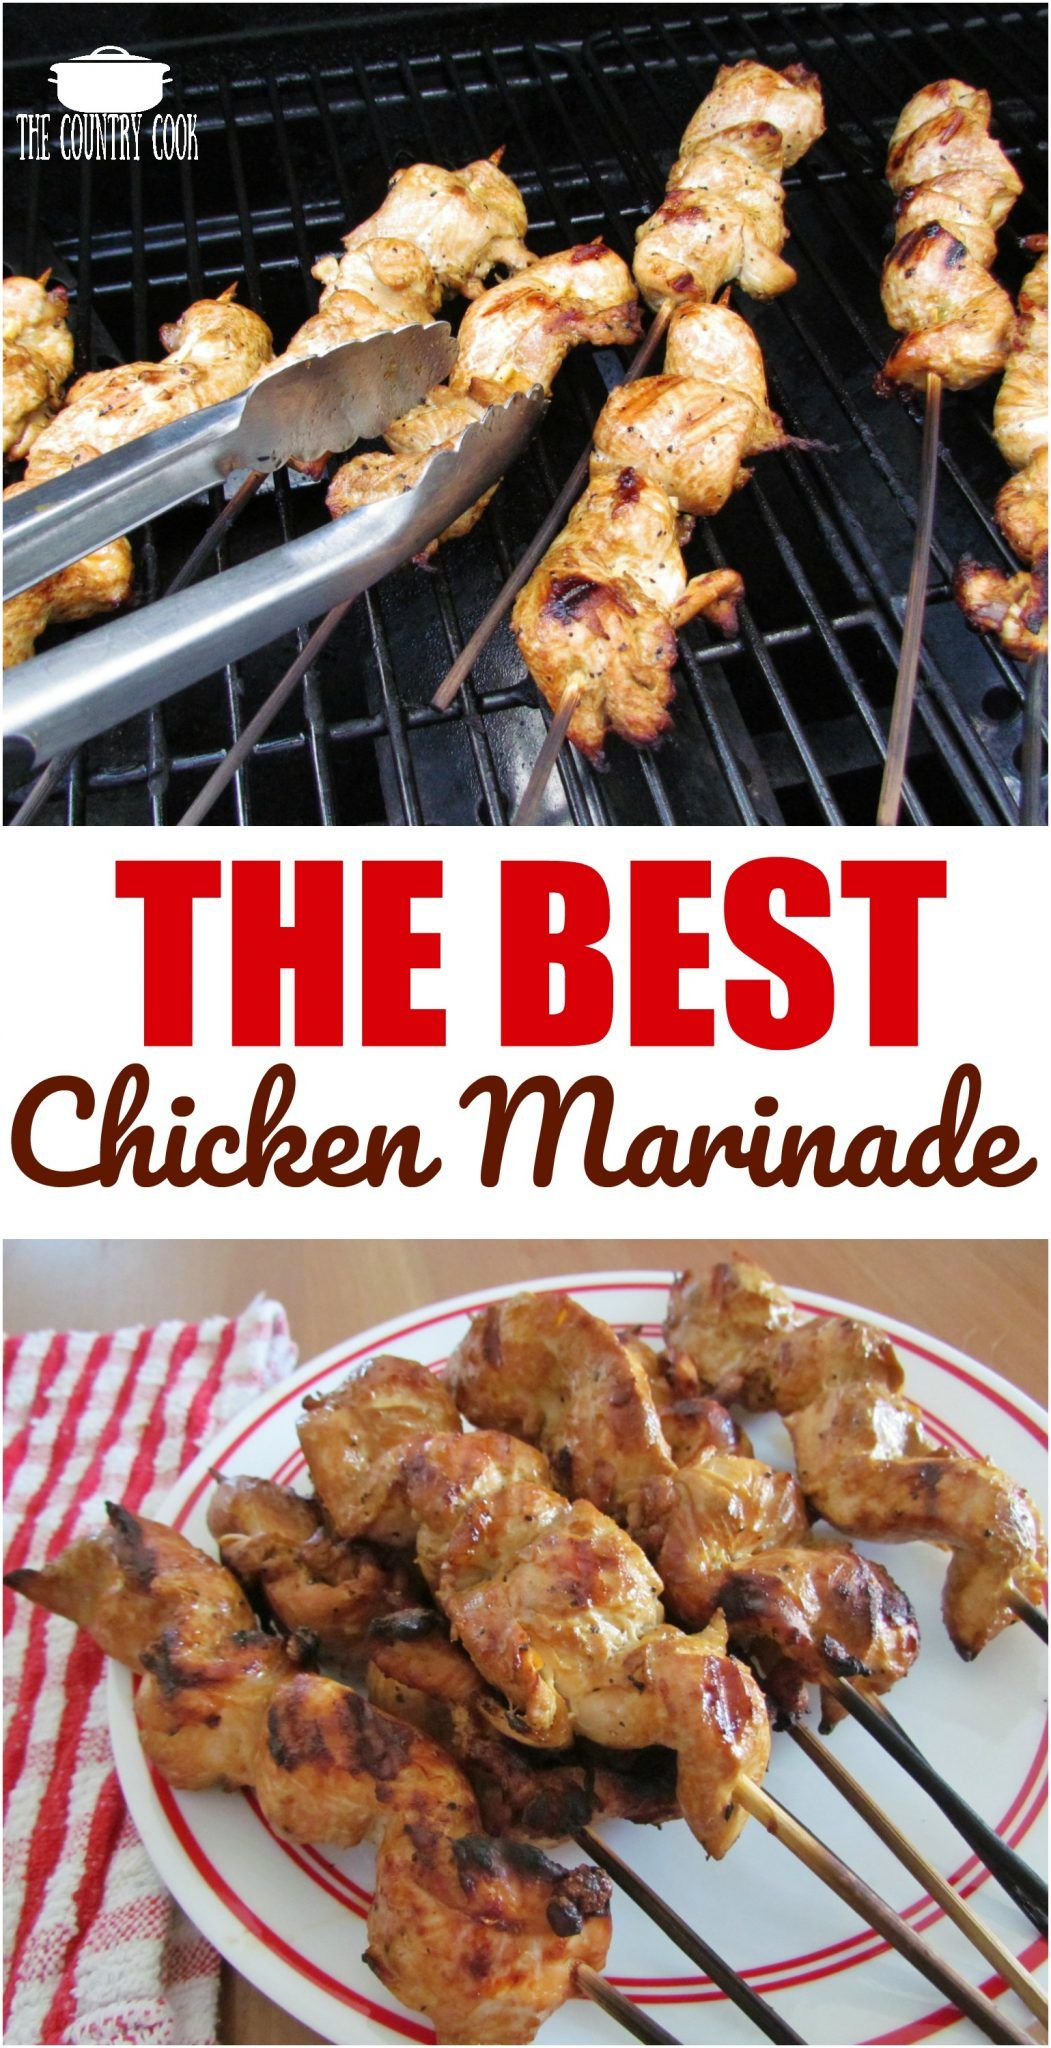 THE BEST GRILLED CHICKEN MARINADE | The Country Cook